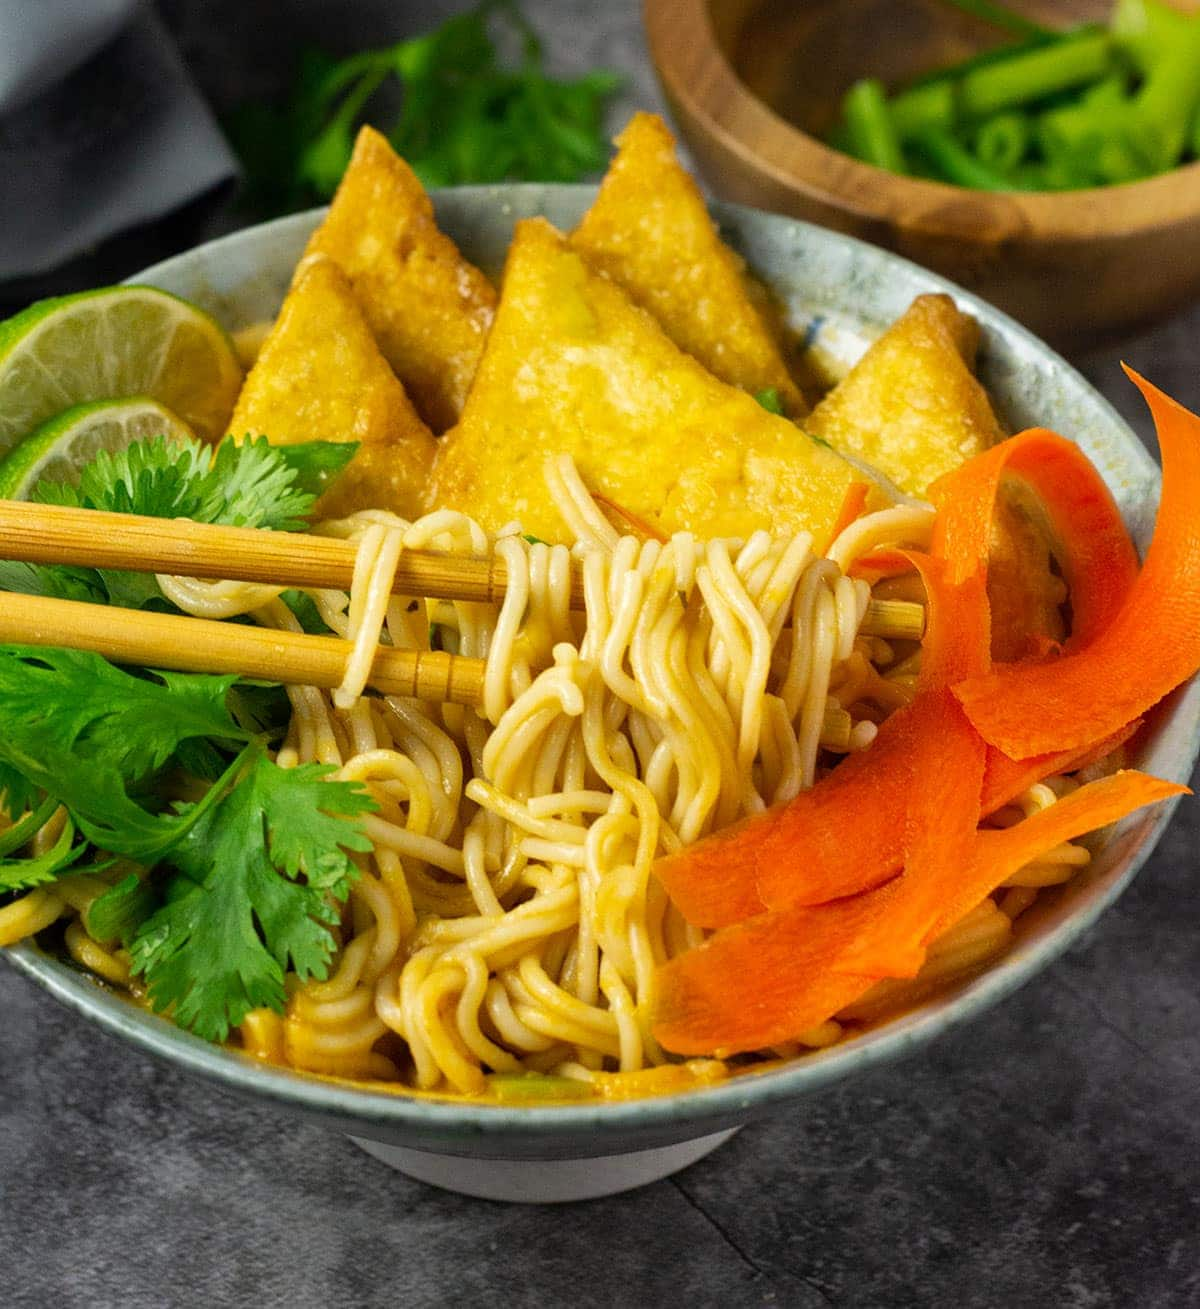 vegan ramen soup noodles in a bowl, being held by chopsticks on grey background